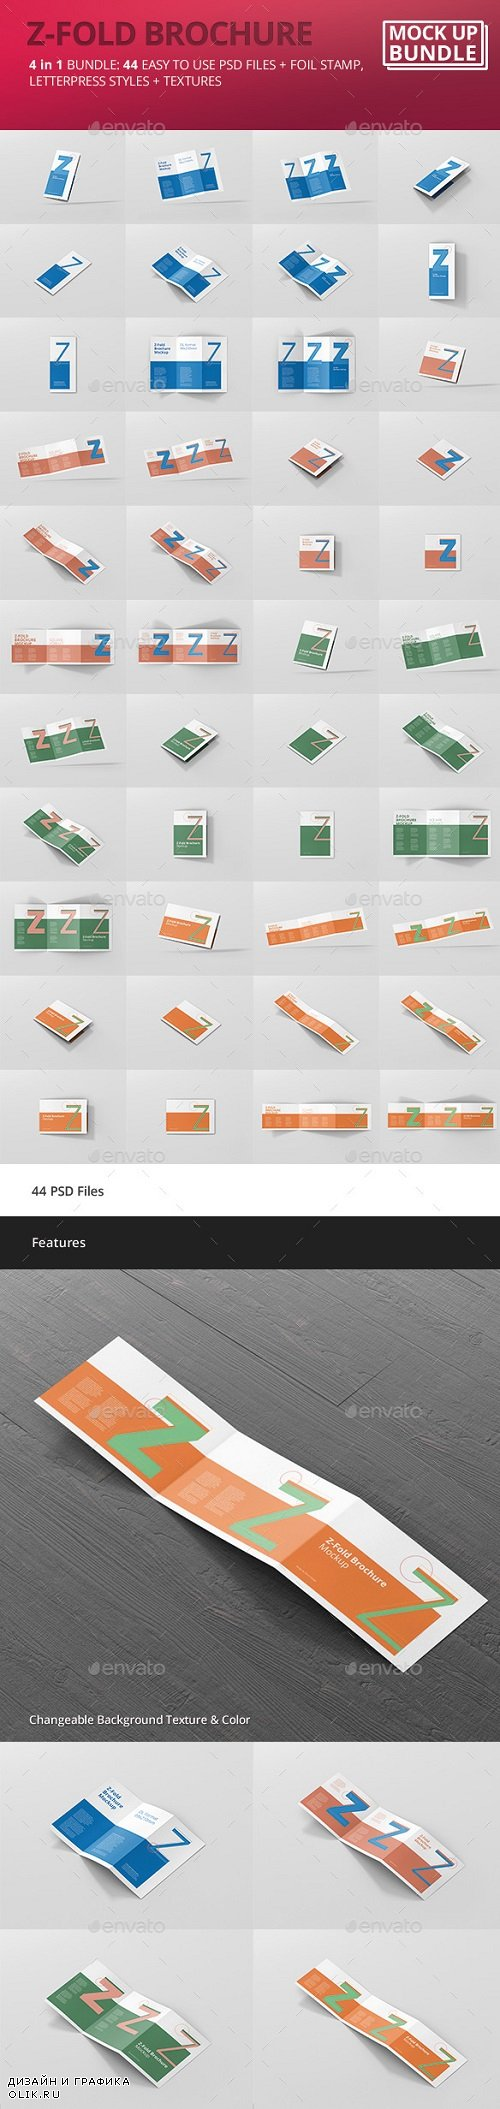 Z-Fold Brochure Mockup Bundle - 20015051